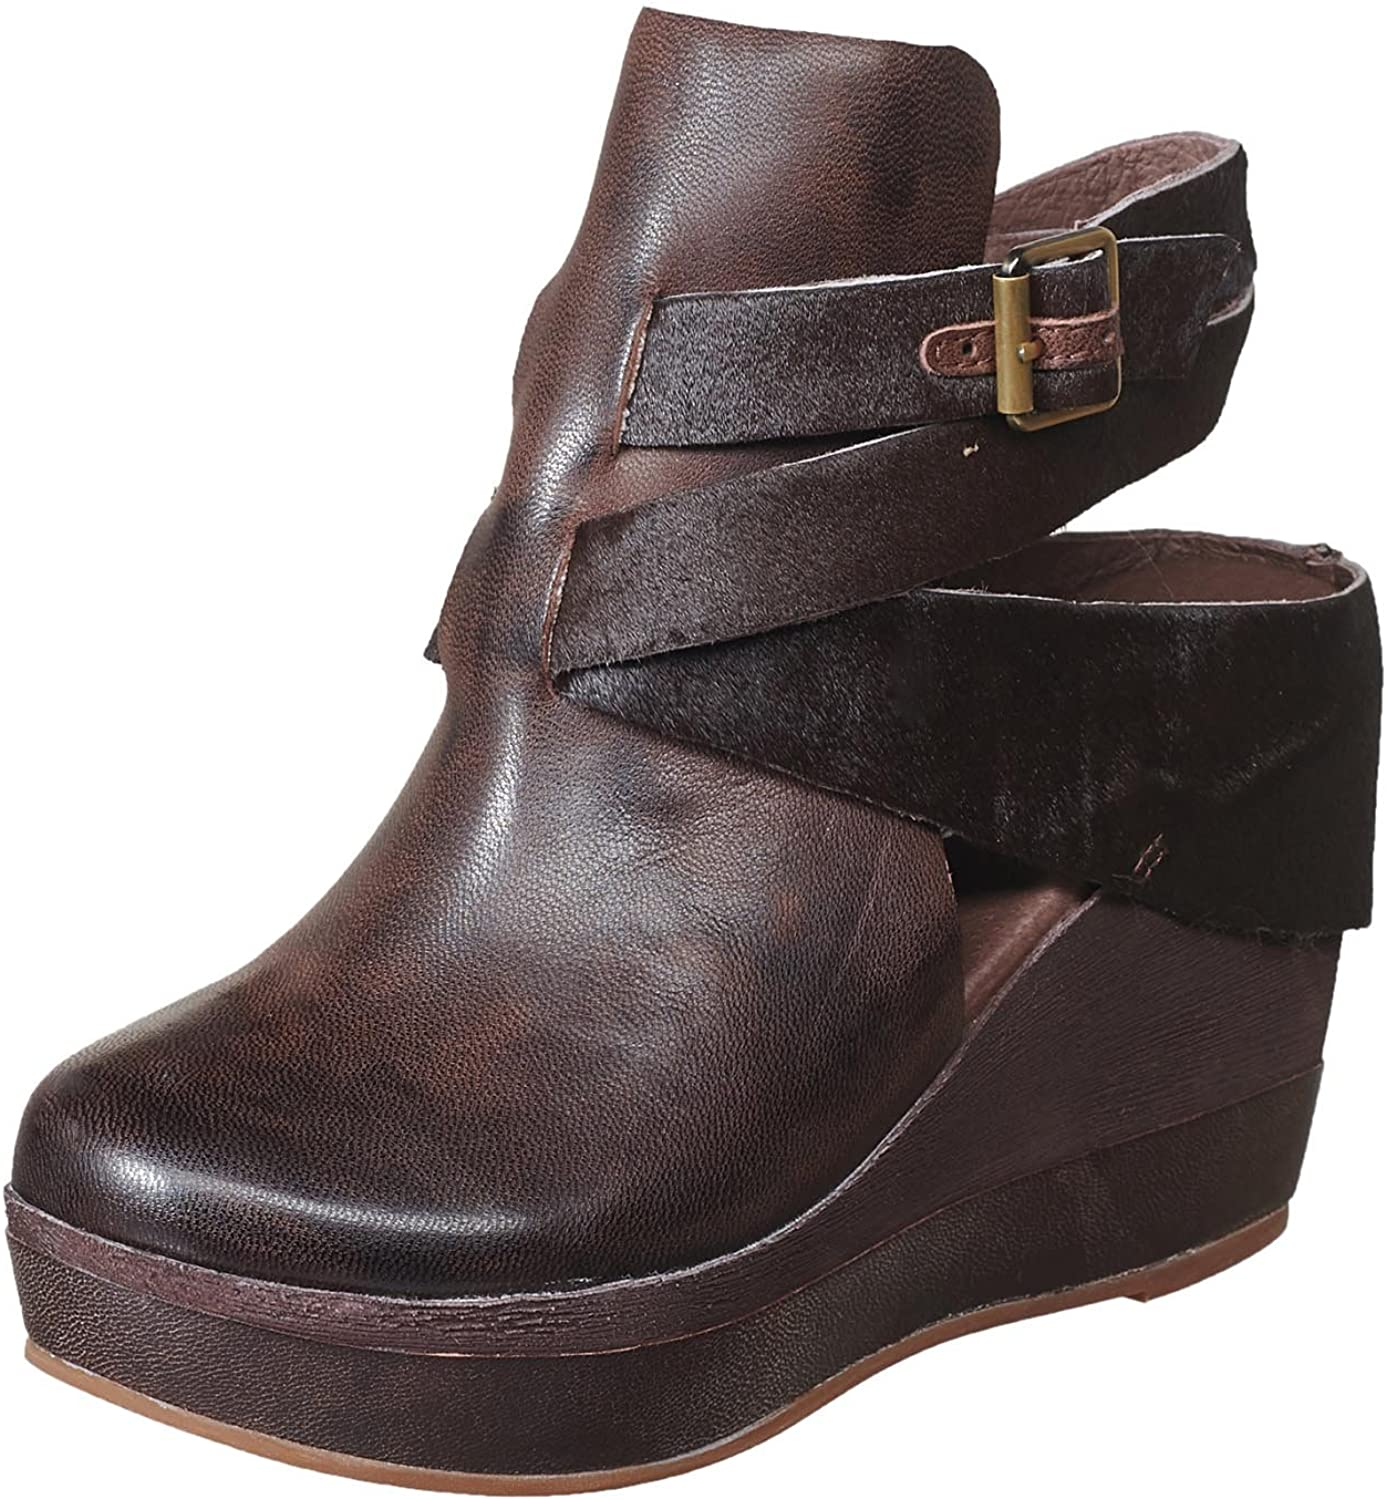 Antelope Women's 957 Leather Hi Wedge Buckle Wrap